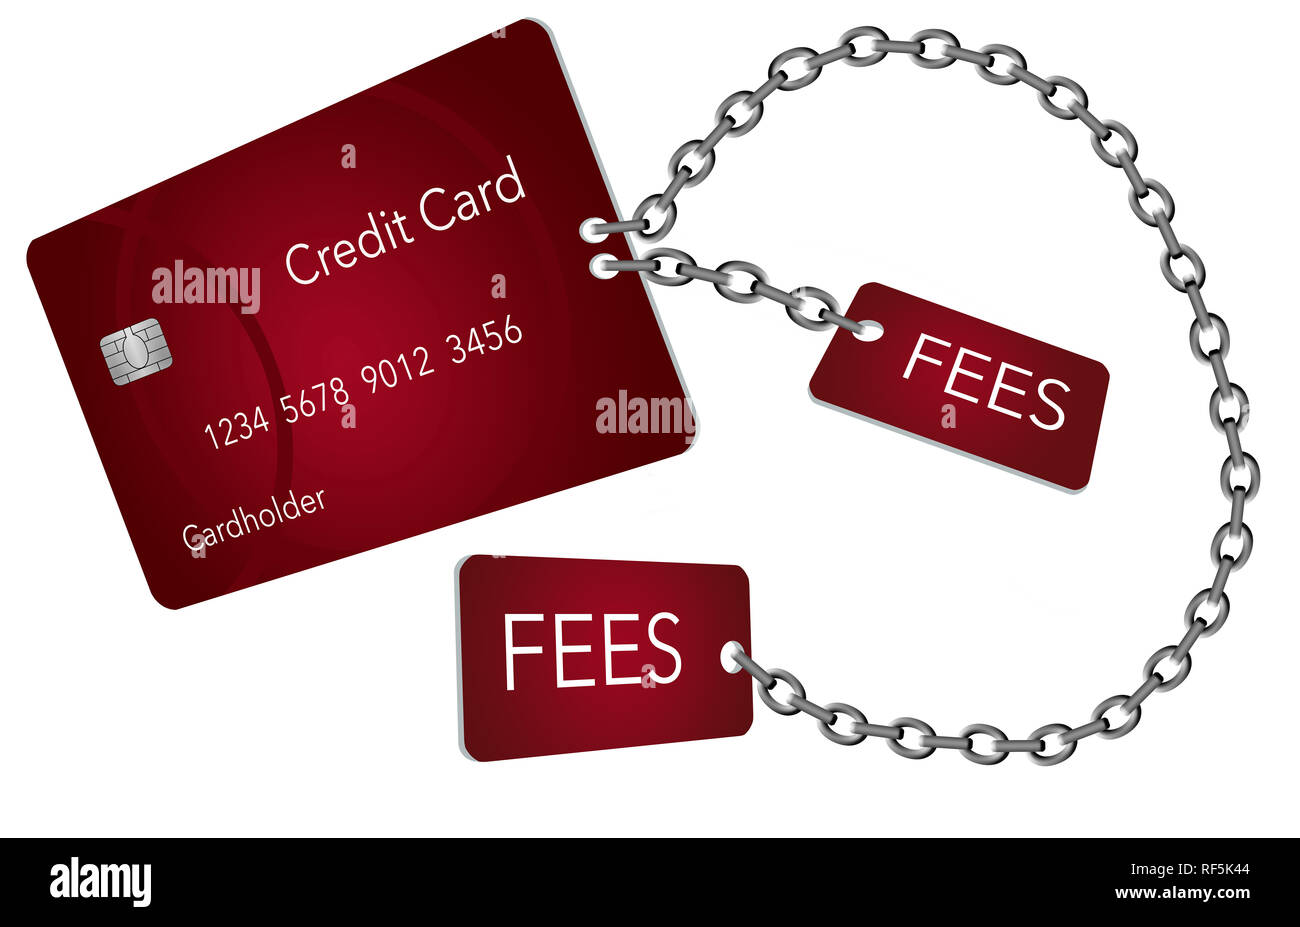 Credit cards usually come with some fees attached. Here is an image where those fees are chained to the credit card. Text area included. This is an il - Stock Image